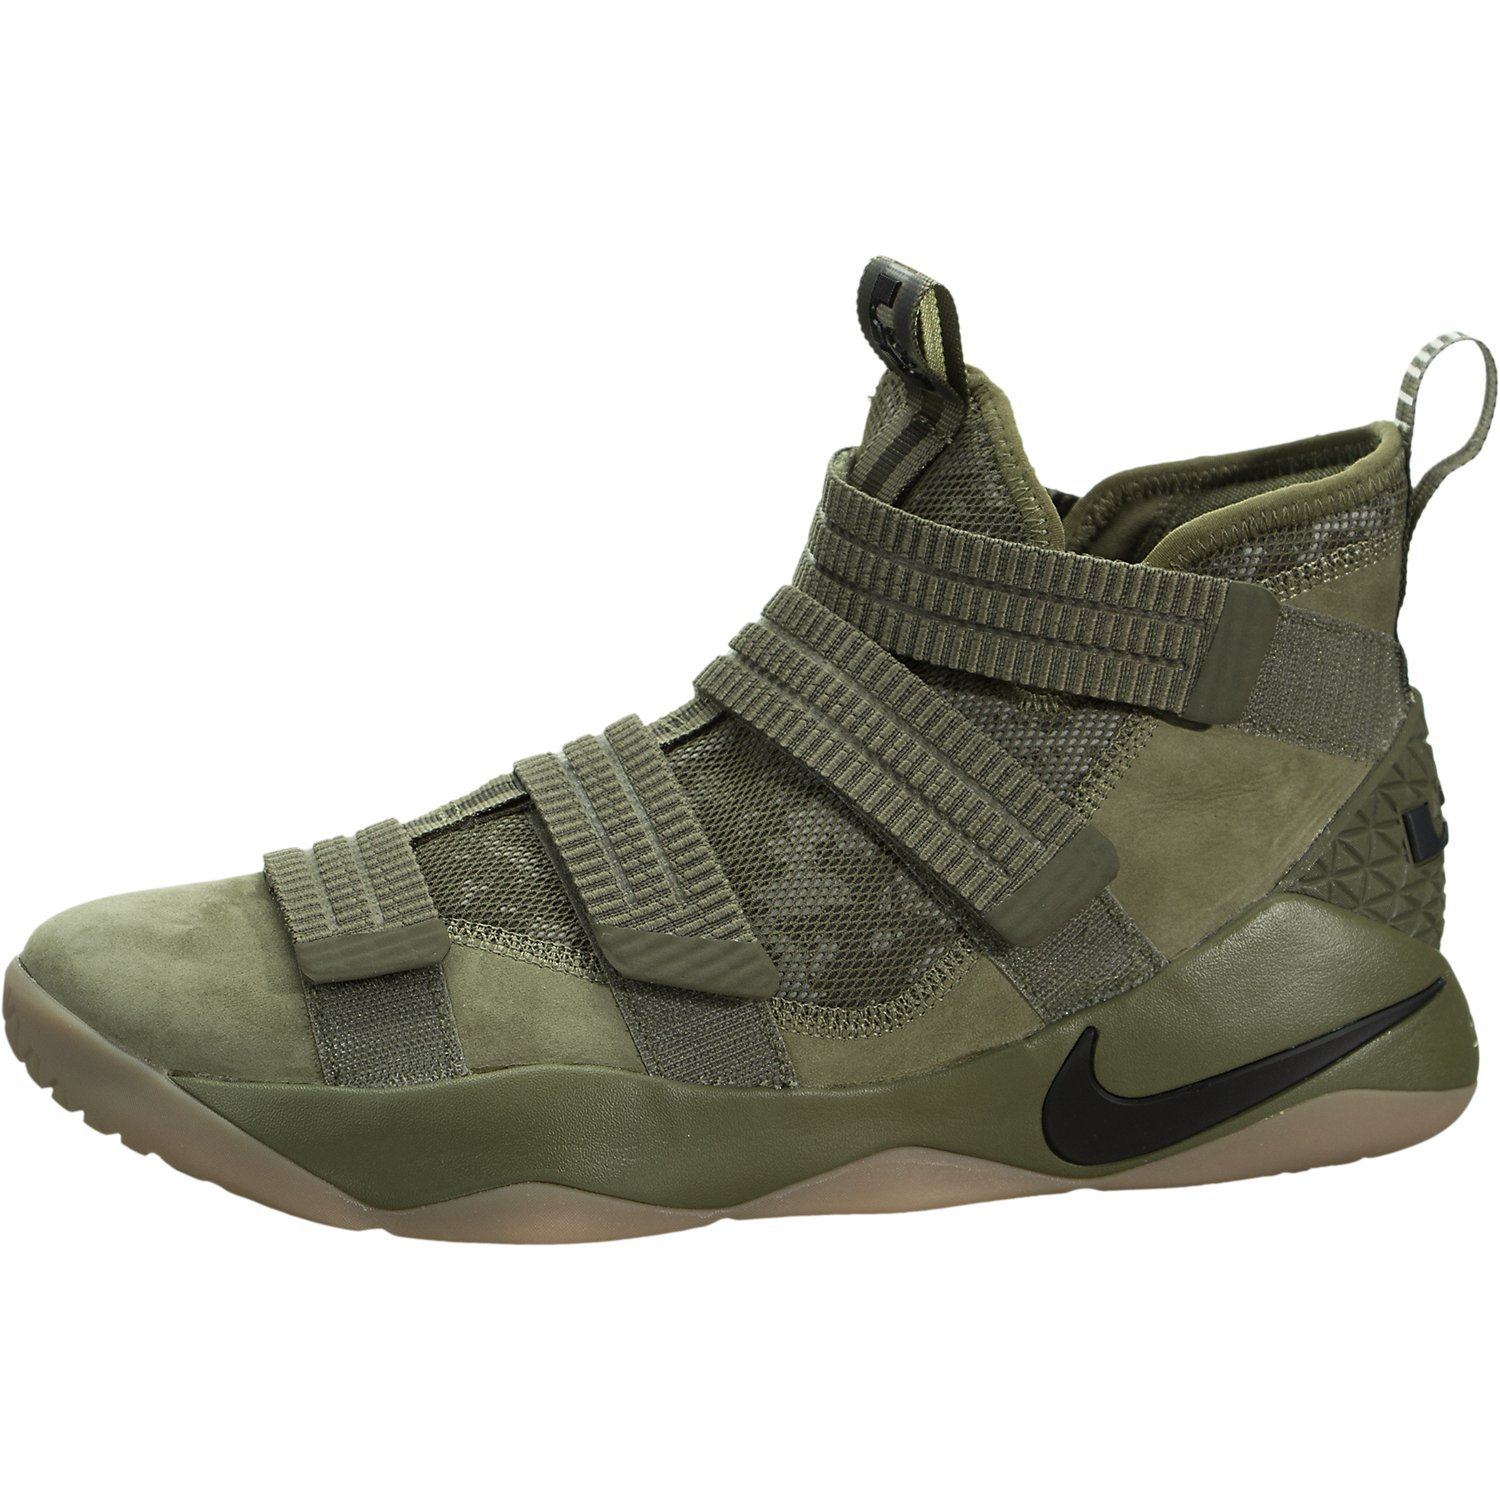 prisa Observar Guinness  Nike Lebron Soldier XI SFG Green: Amazon.in: Shoes & Handbags